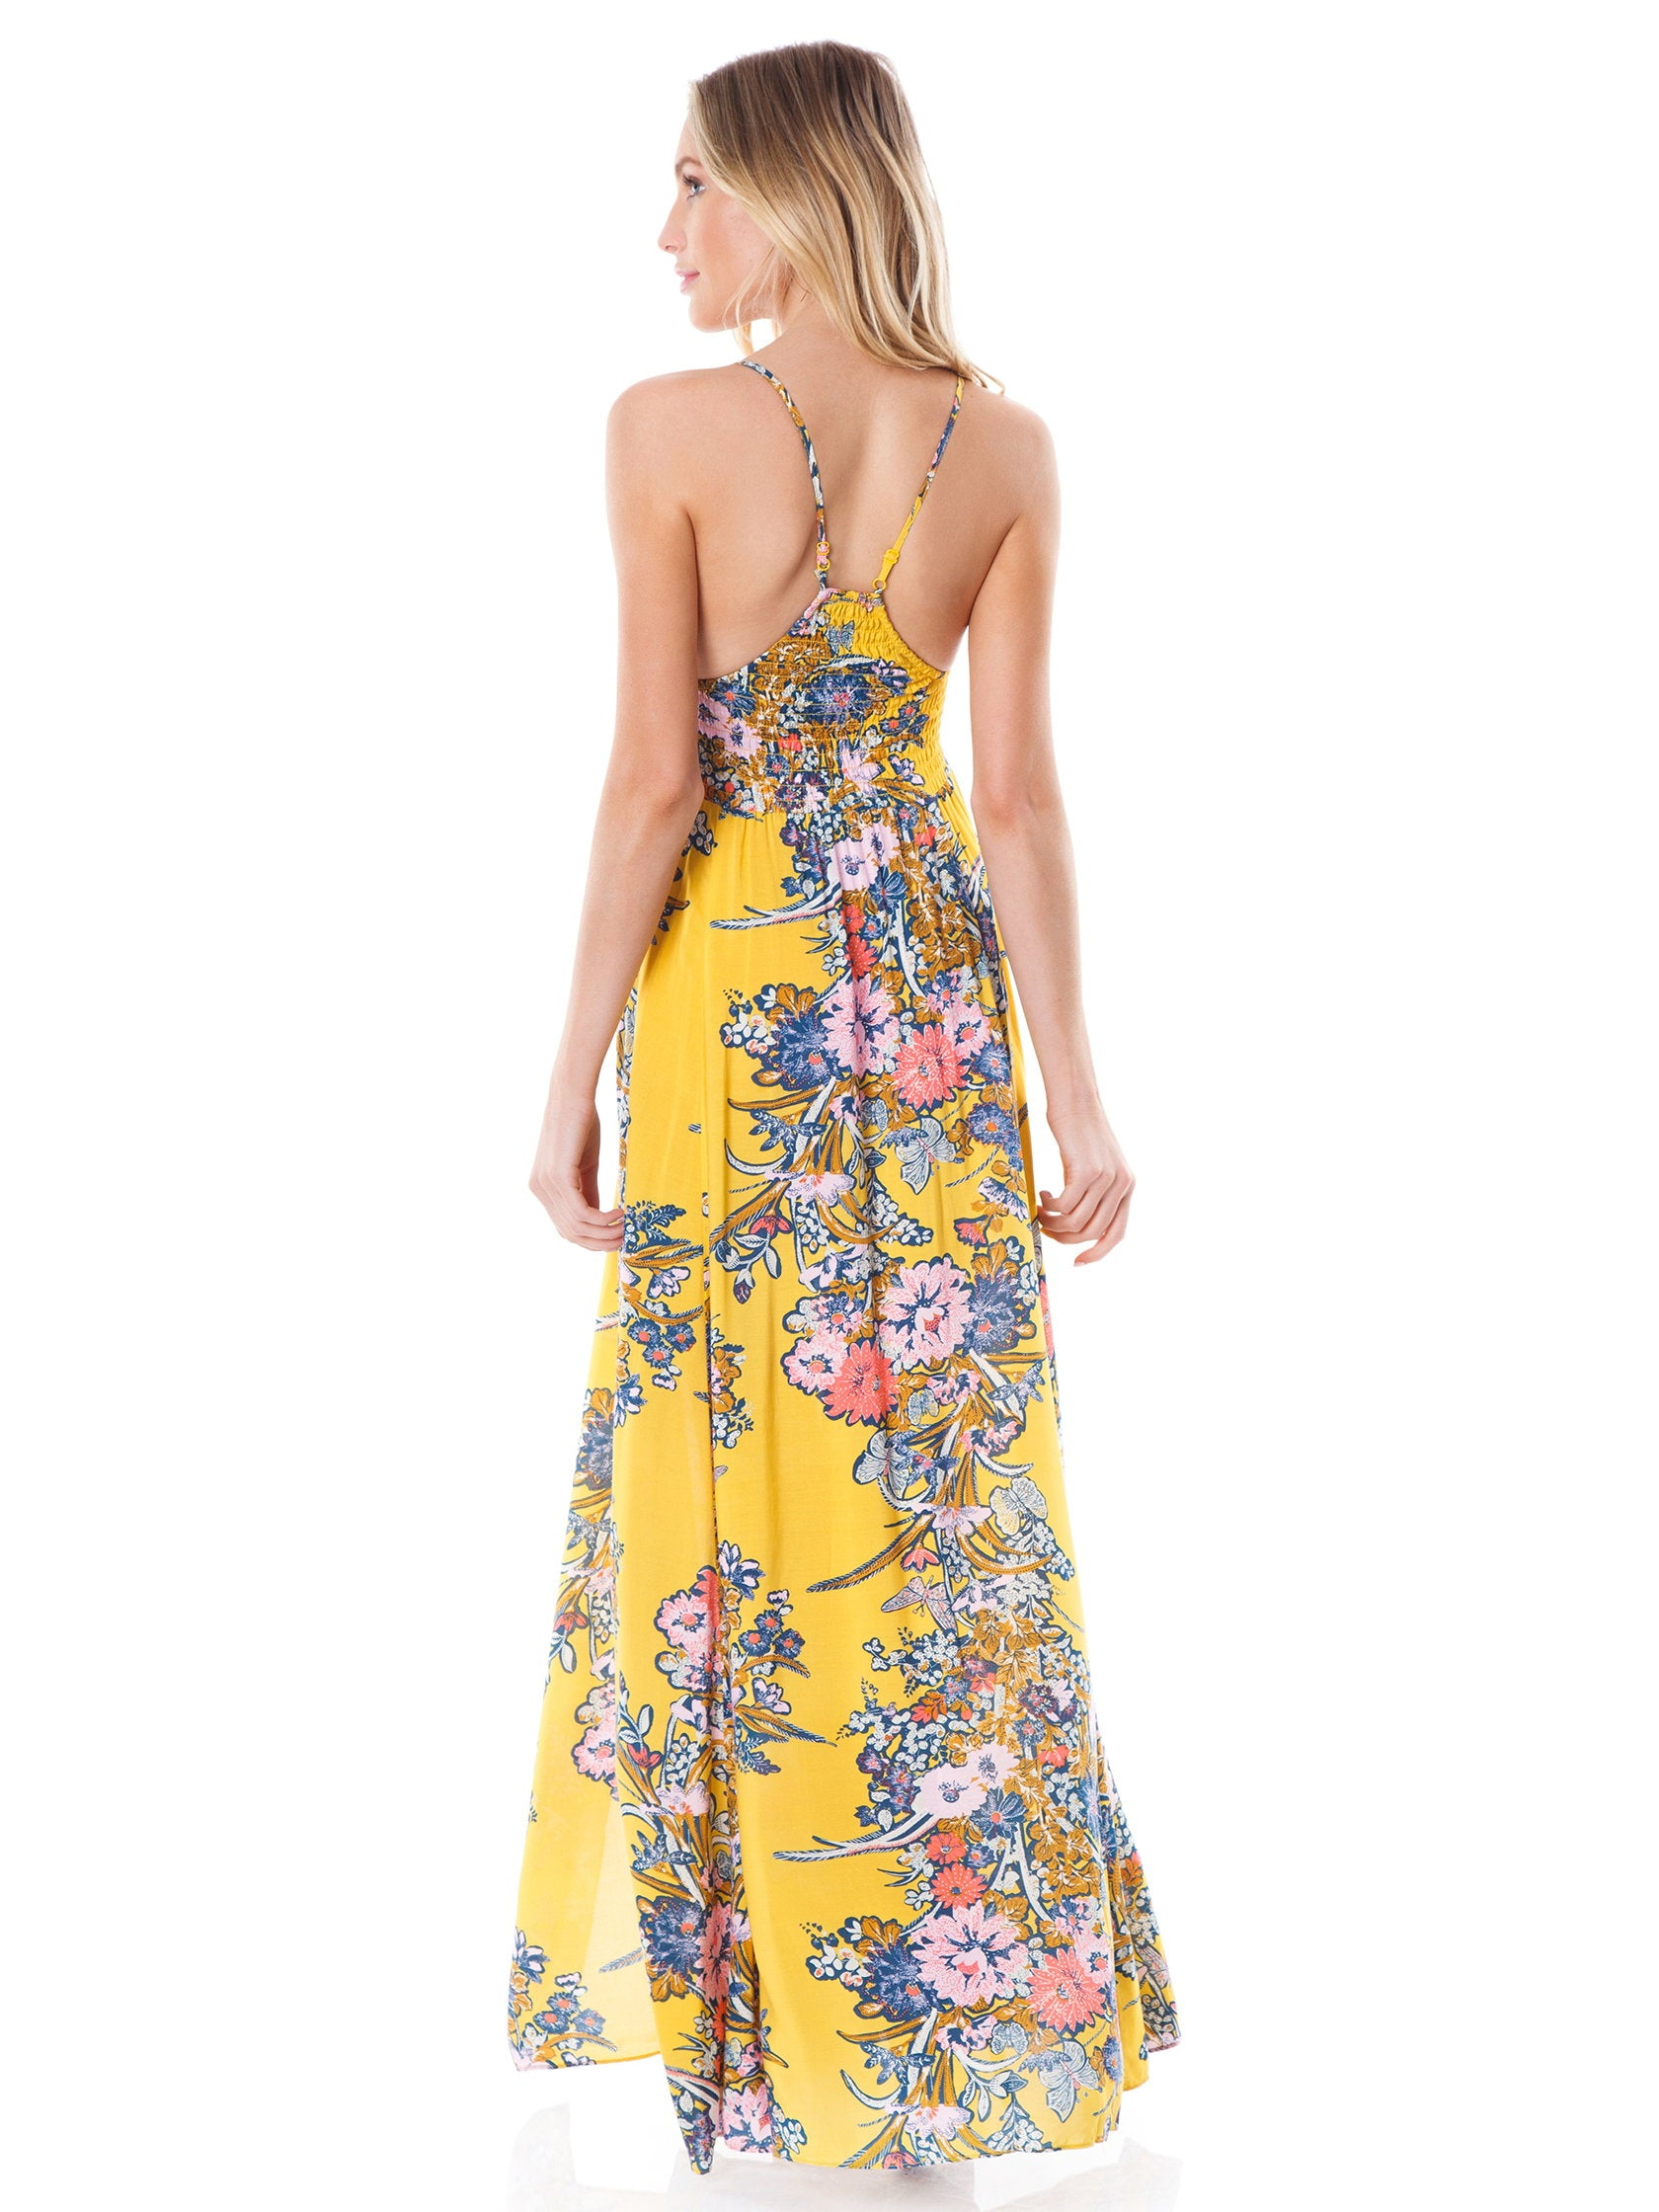 774f7837651 Women wearing a dress rental from Free People called Through The Vine  Printed Maxi Dress